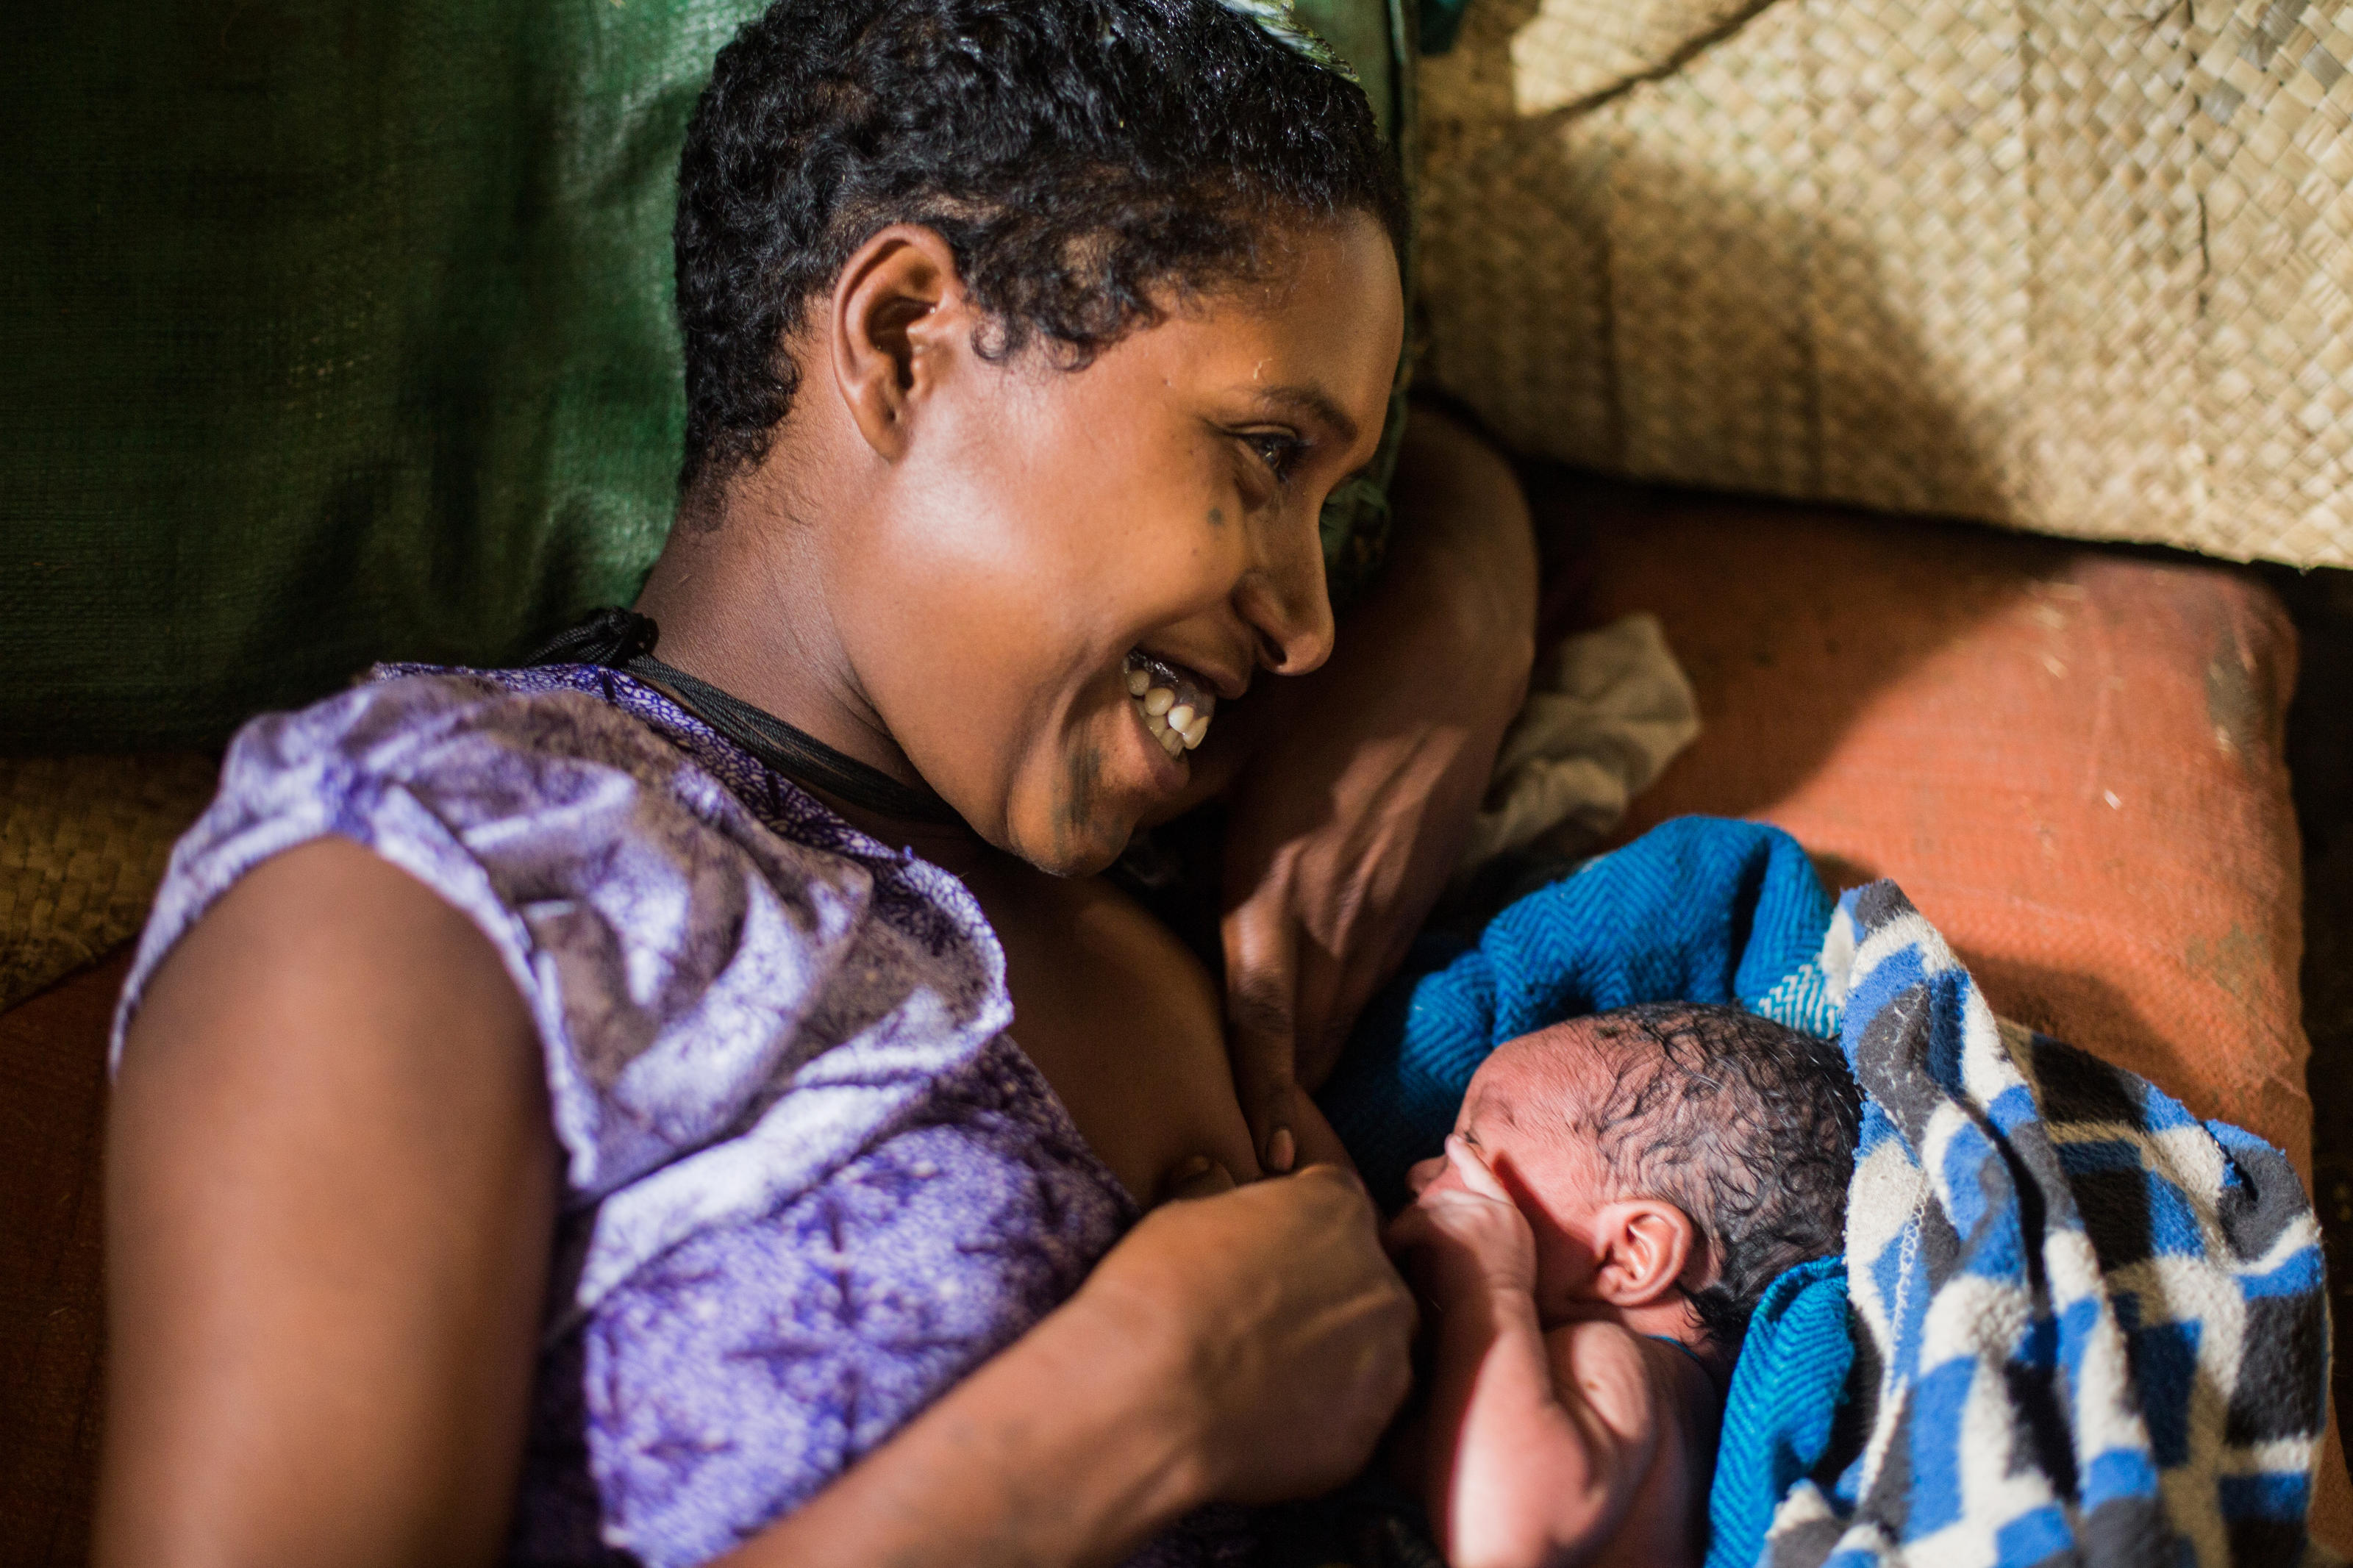 Tiru Tefera, 18, with her recently-delivered her first son born at Yiraber Health Centre, Jabi Tehnan, West Gojjam, Ethiopia, December 2018.